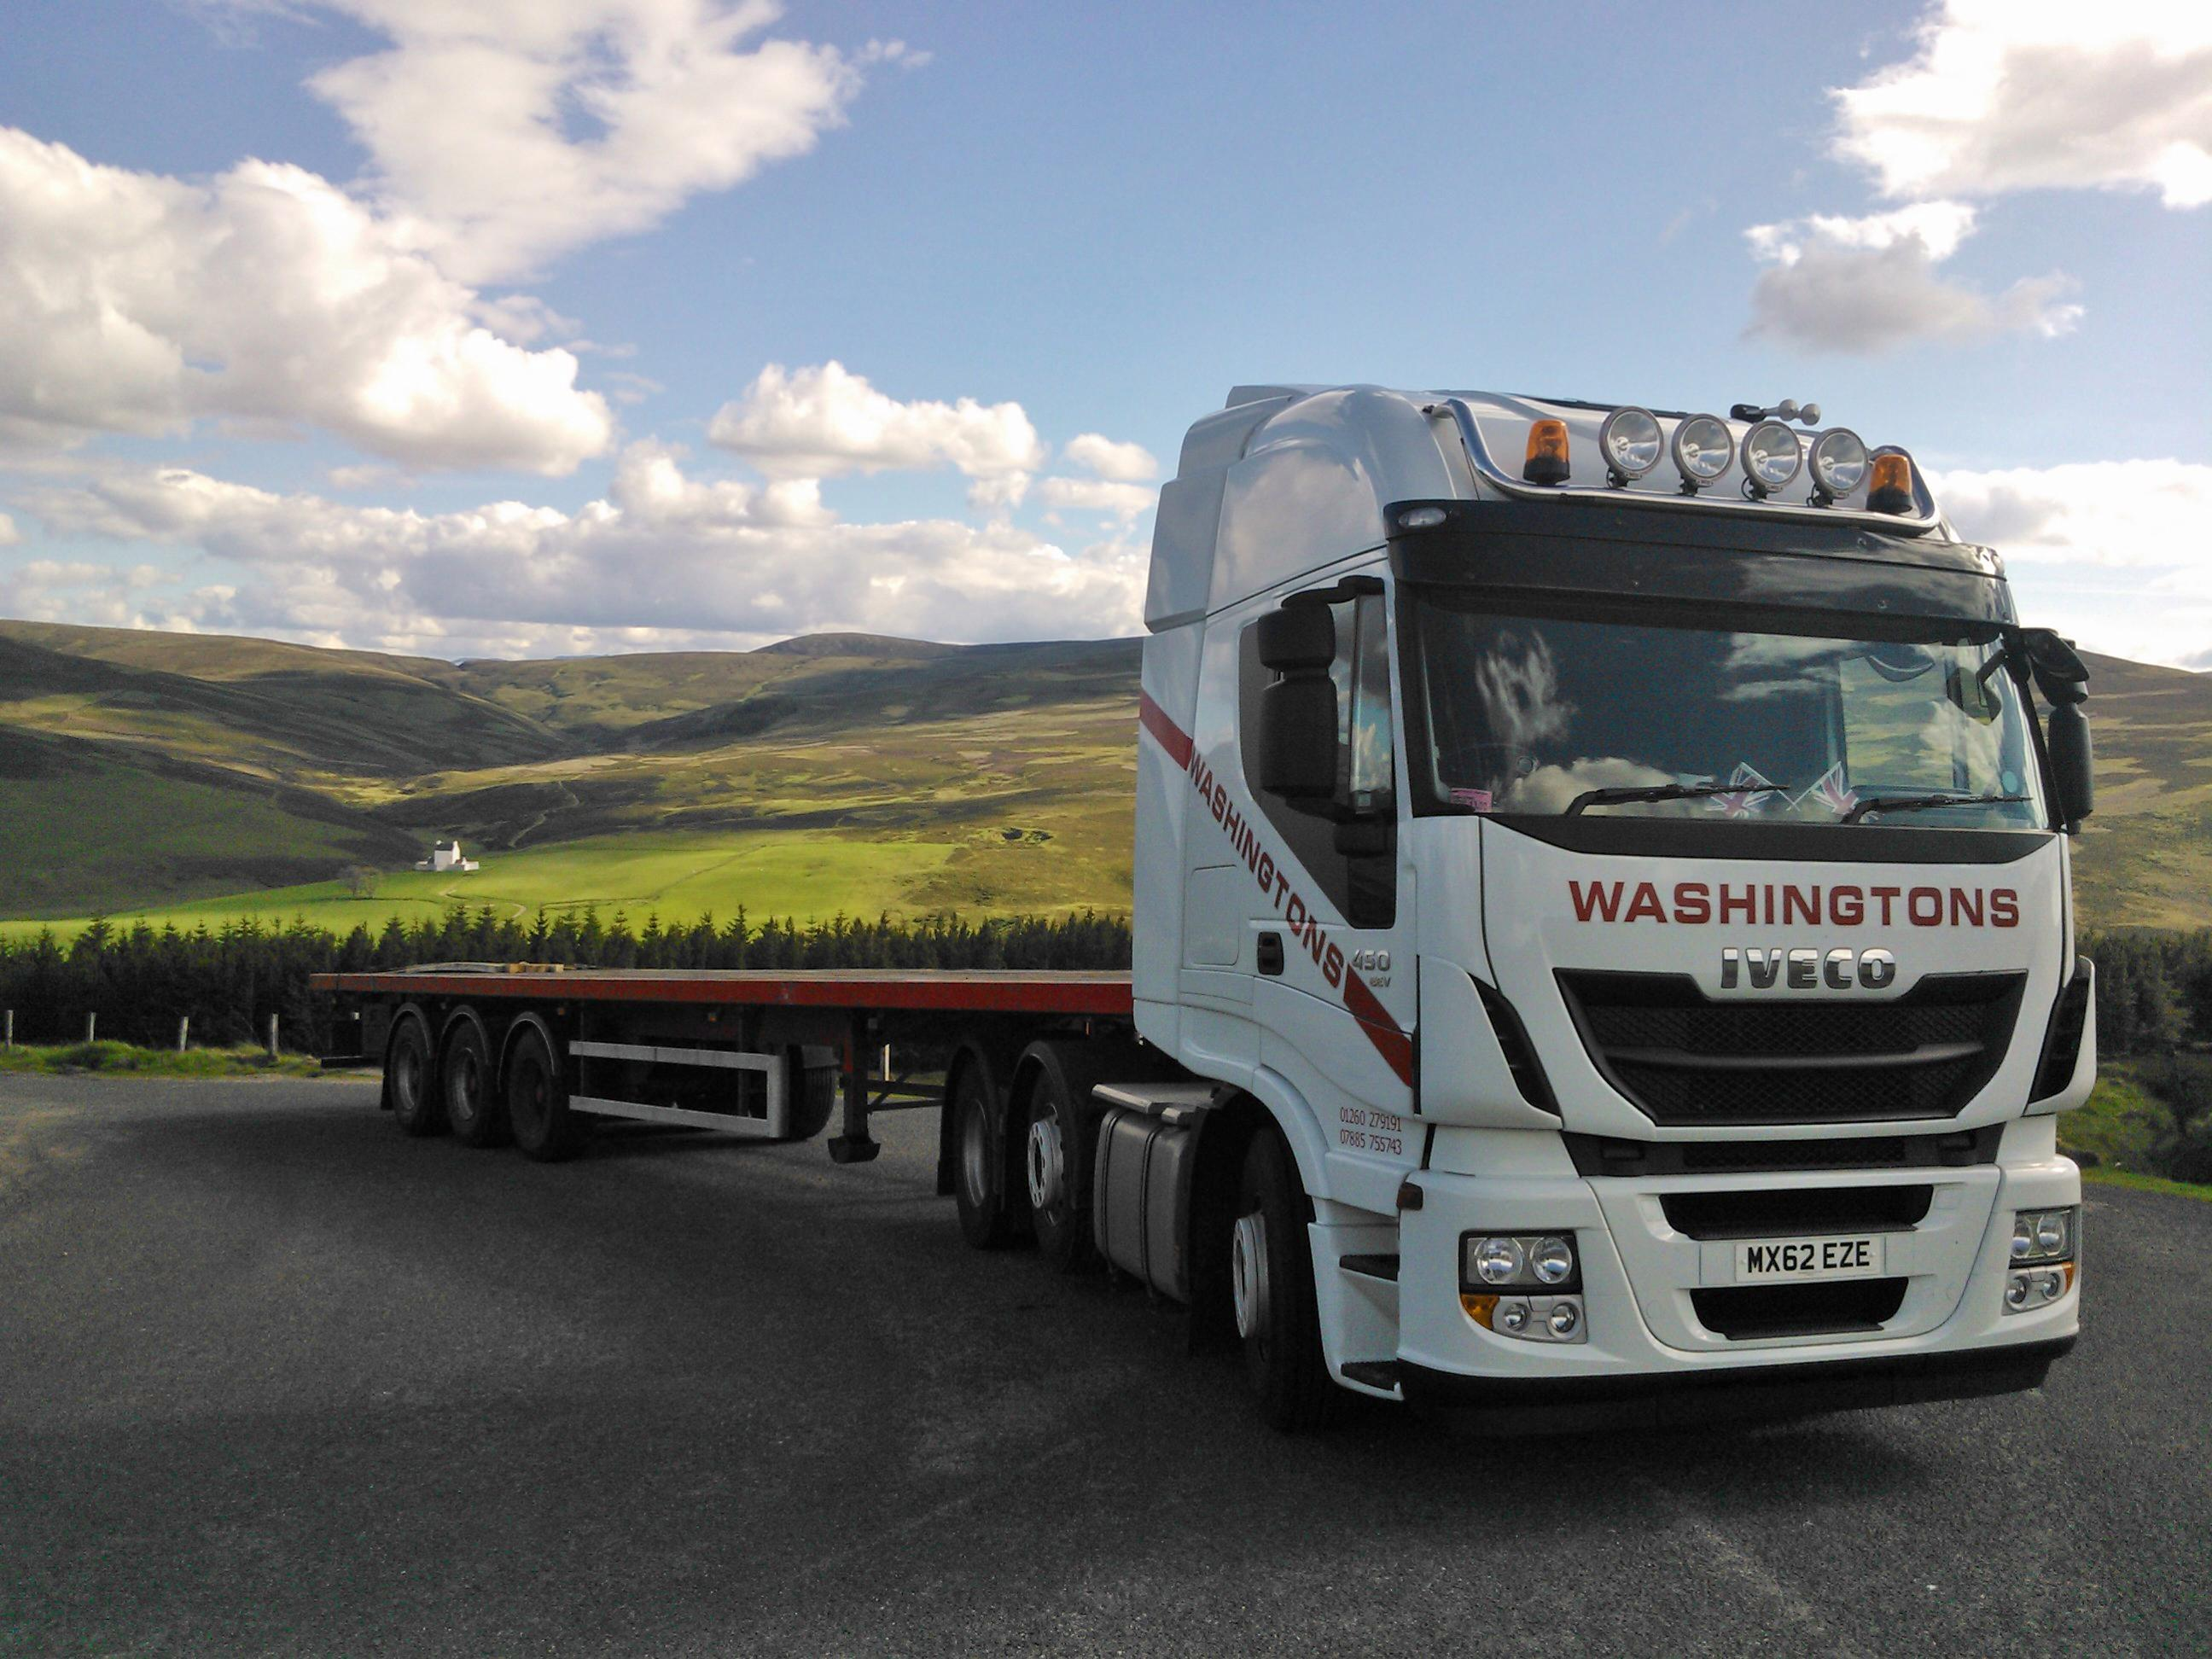 One of our trucks returning from a delivery in Aberdeen.